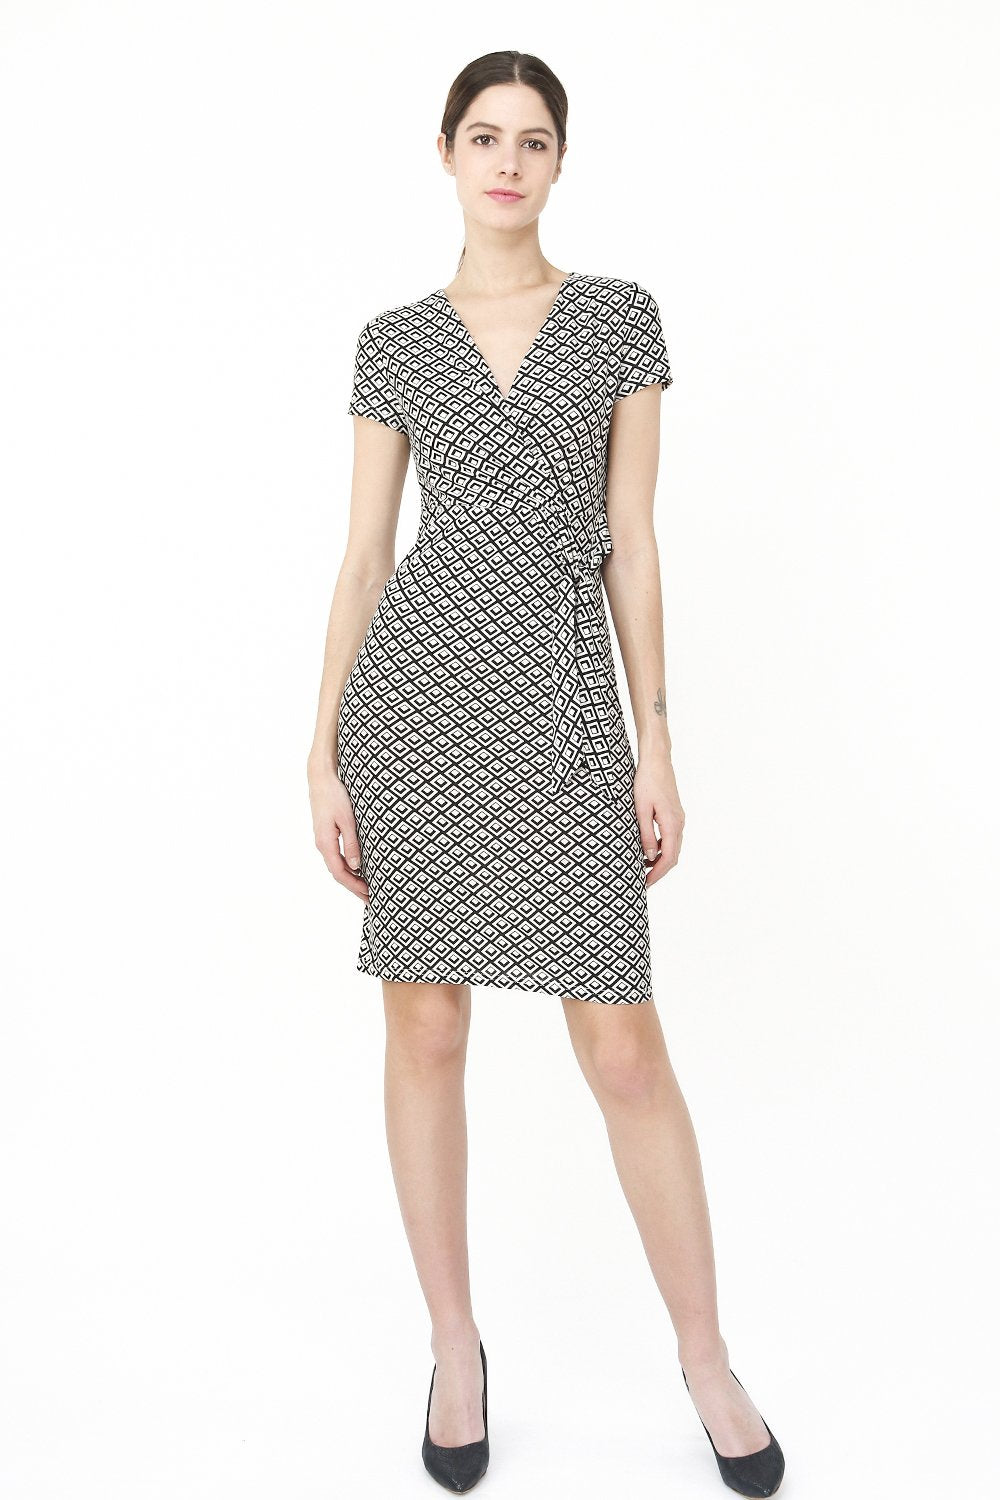 FAKE HEART-CACHE DRESS WITH SQUARED PATTERN